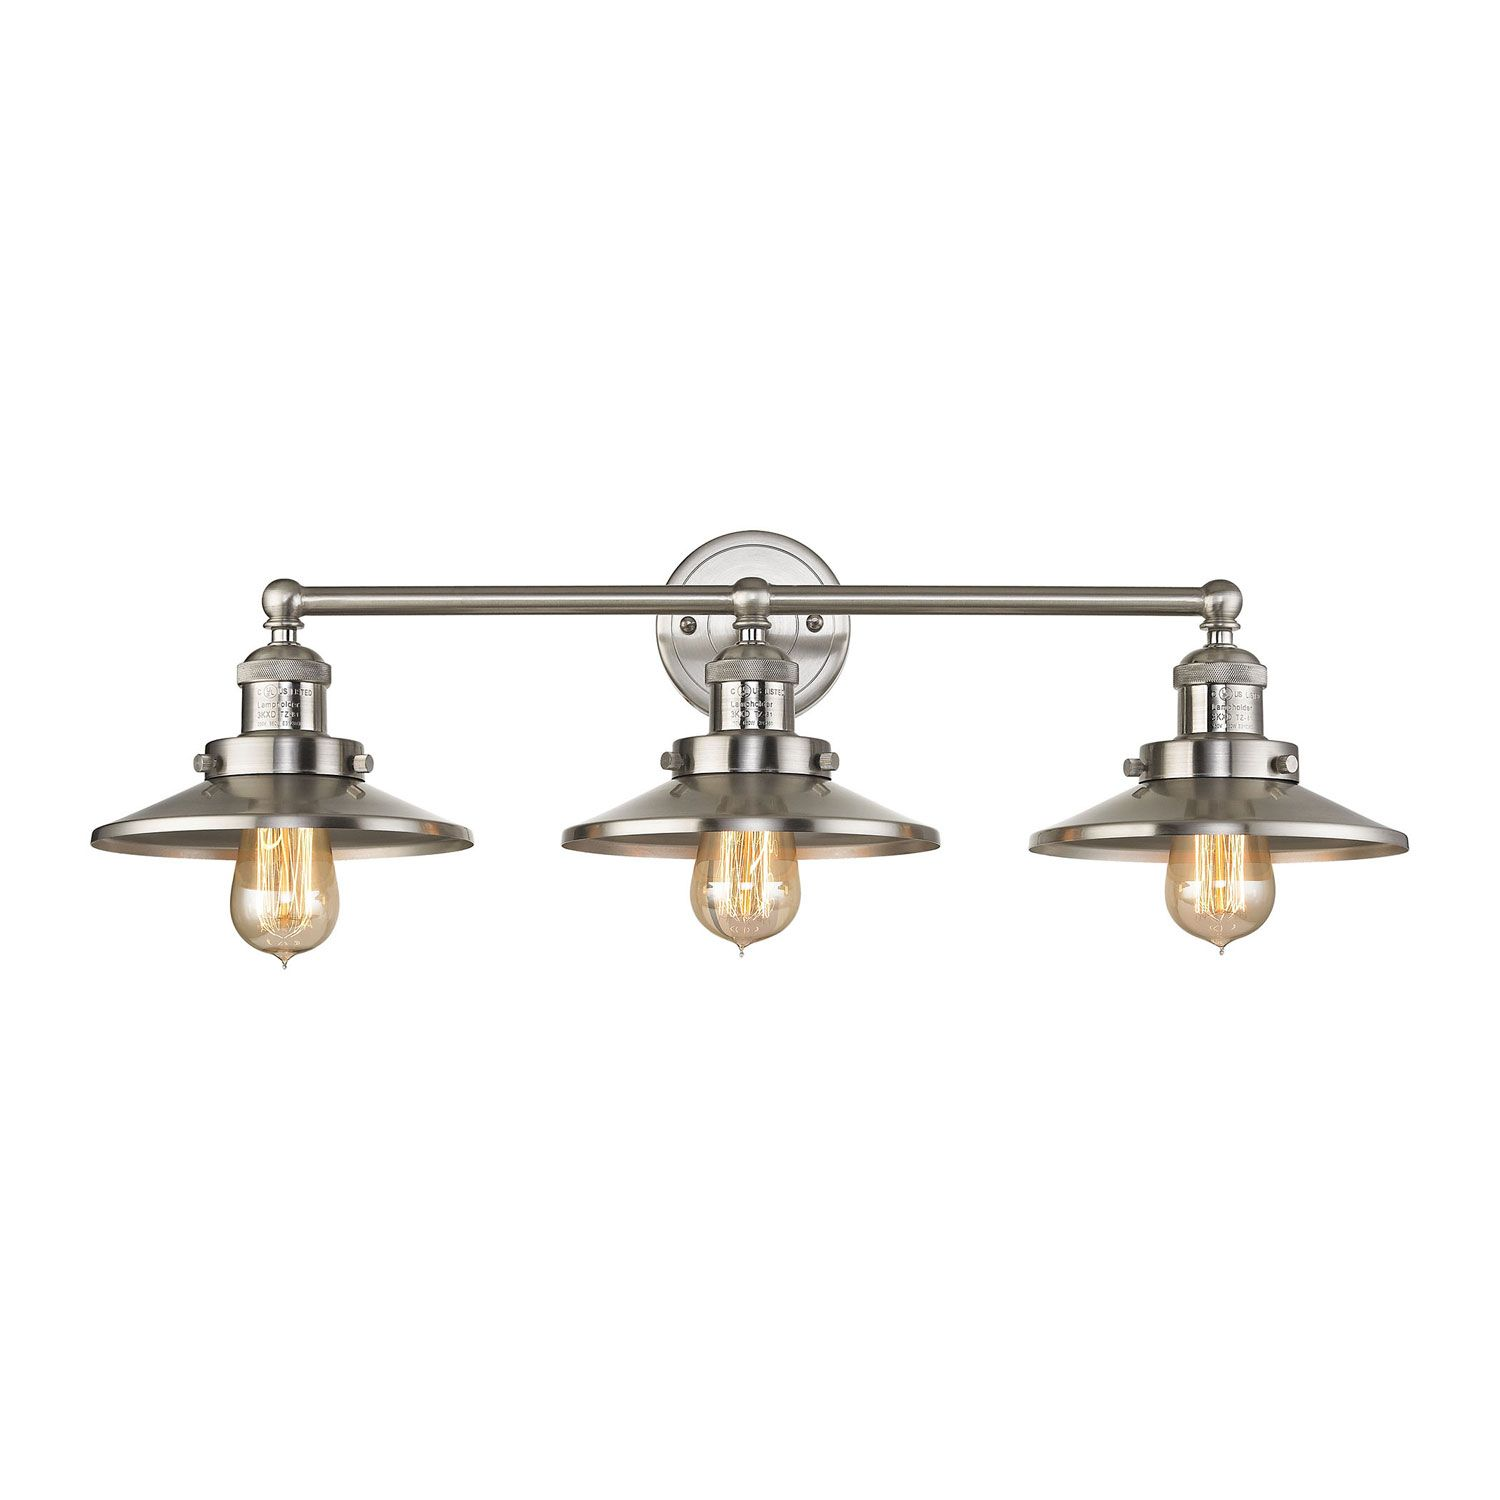 Elk Lighting English Pub Satin Nickel Inch ThreeLight Vanity - Brushed nickel bathroom light fixtures sale